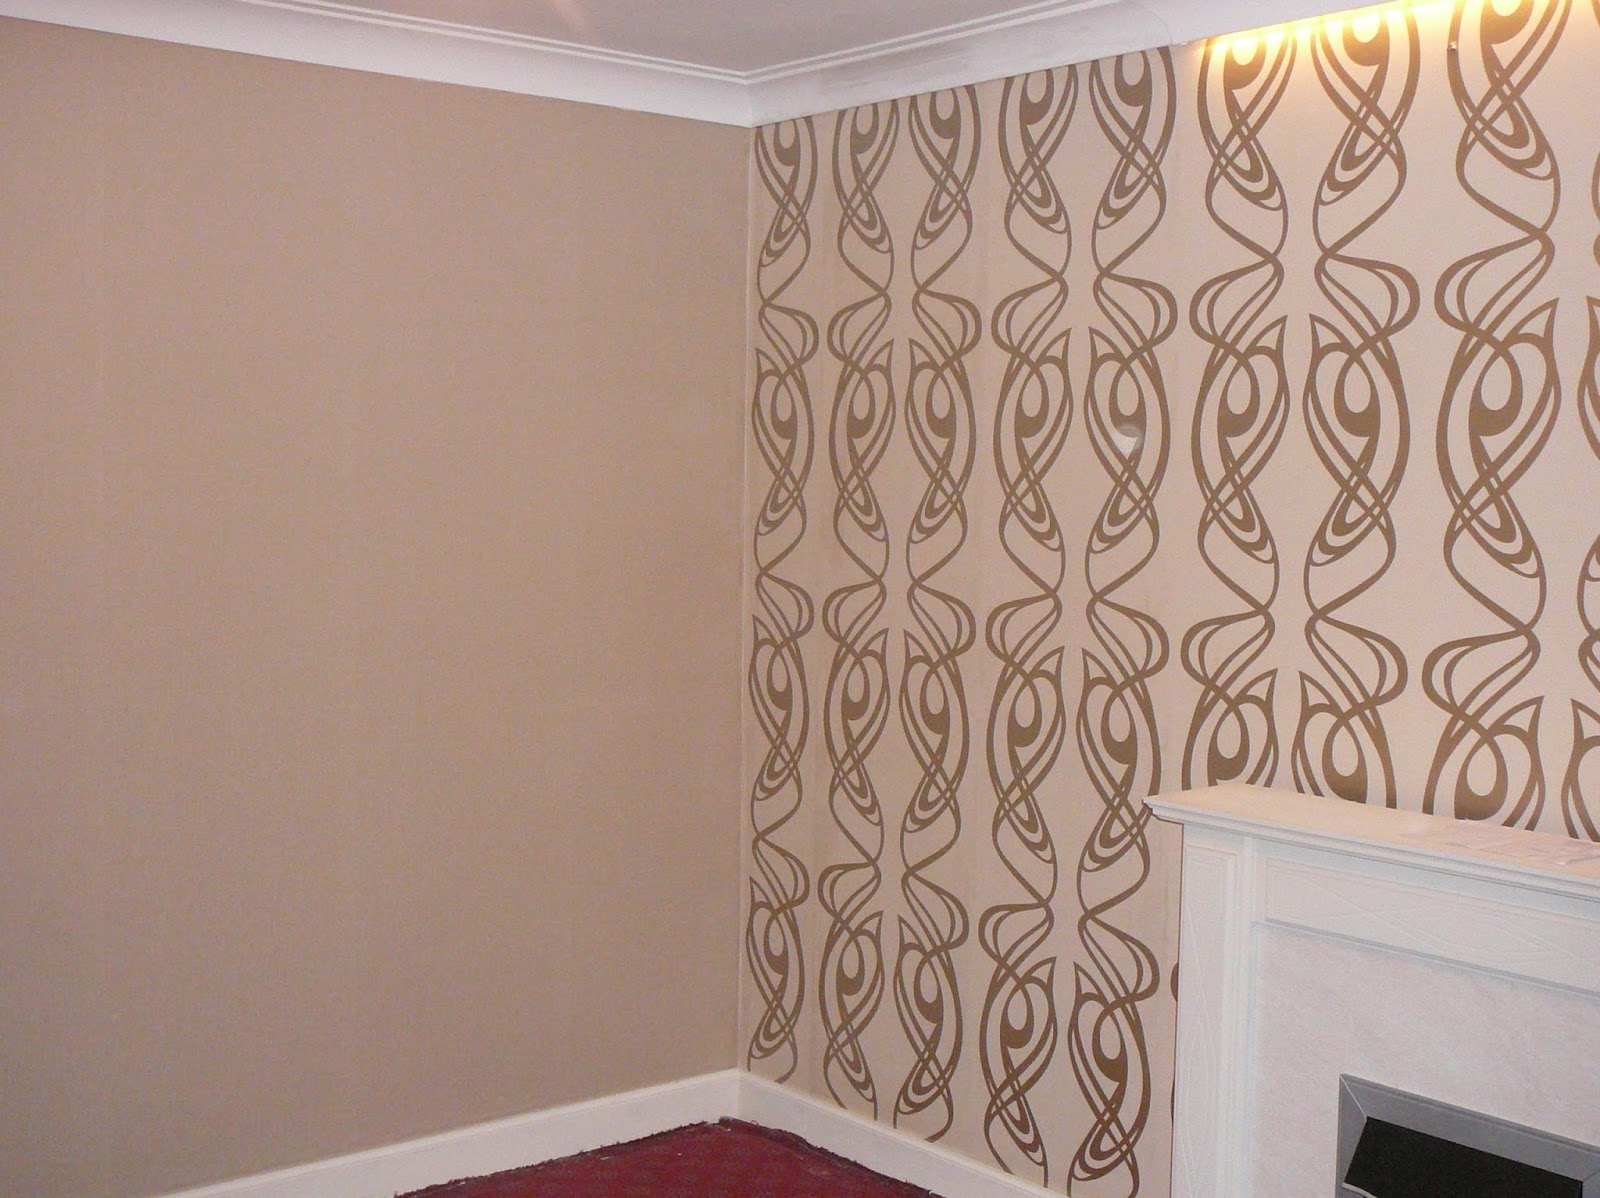 Where To Start When Wallpapering A Room